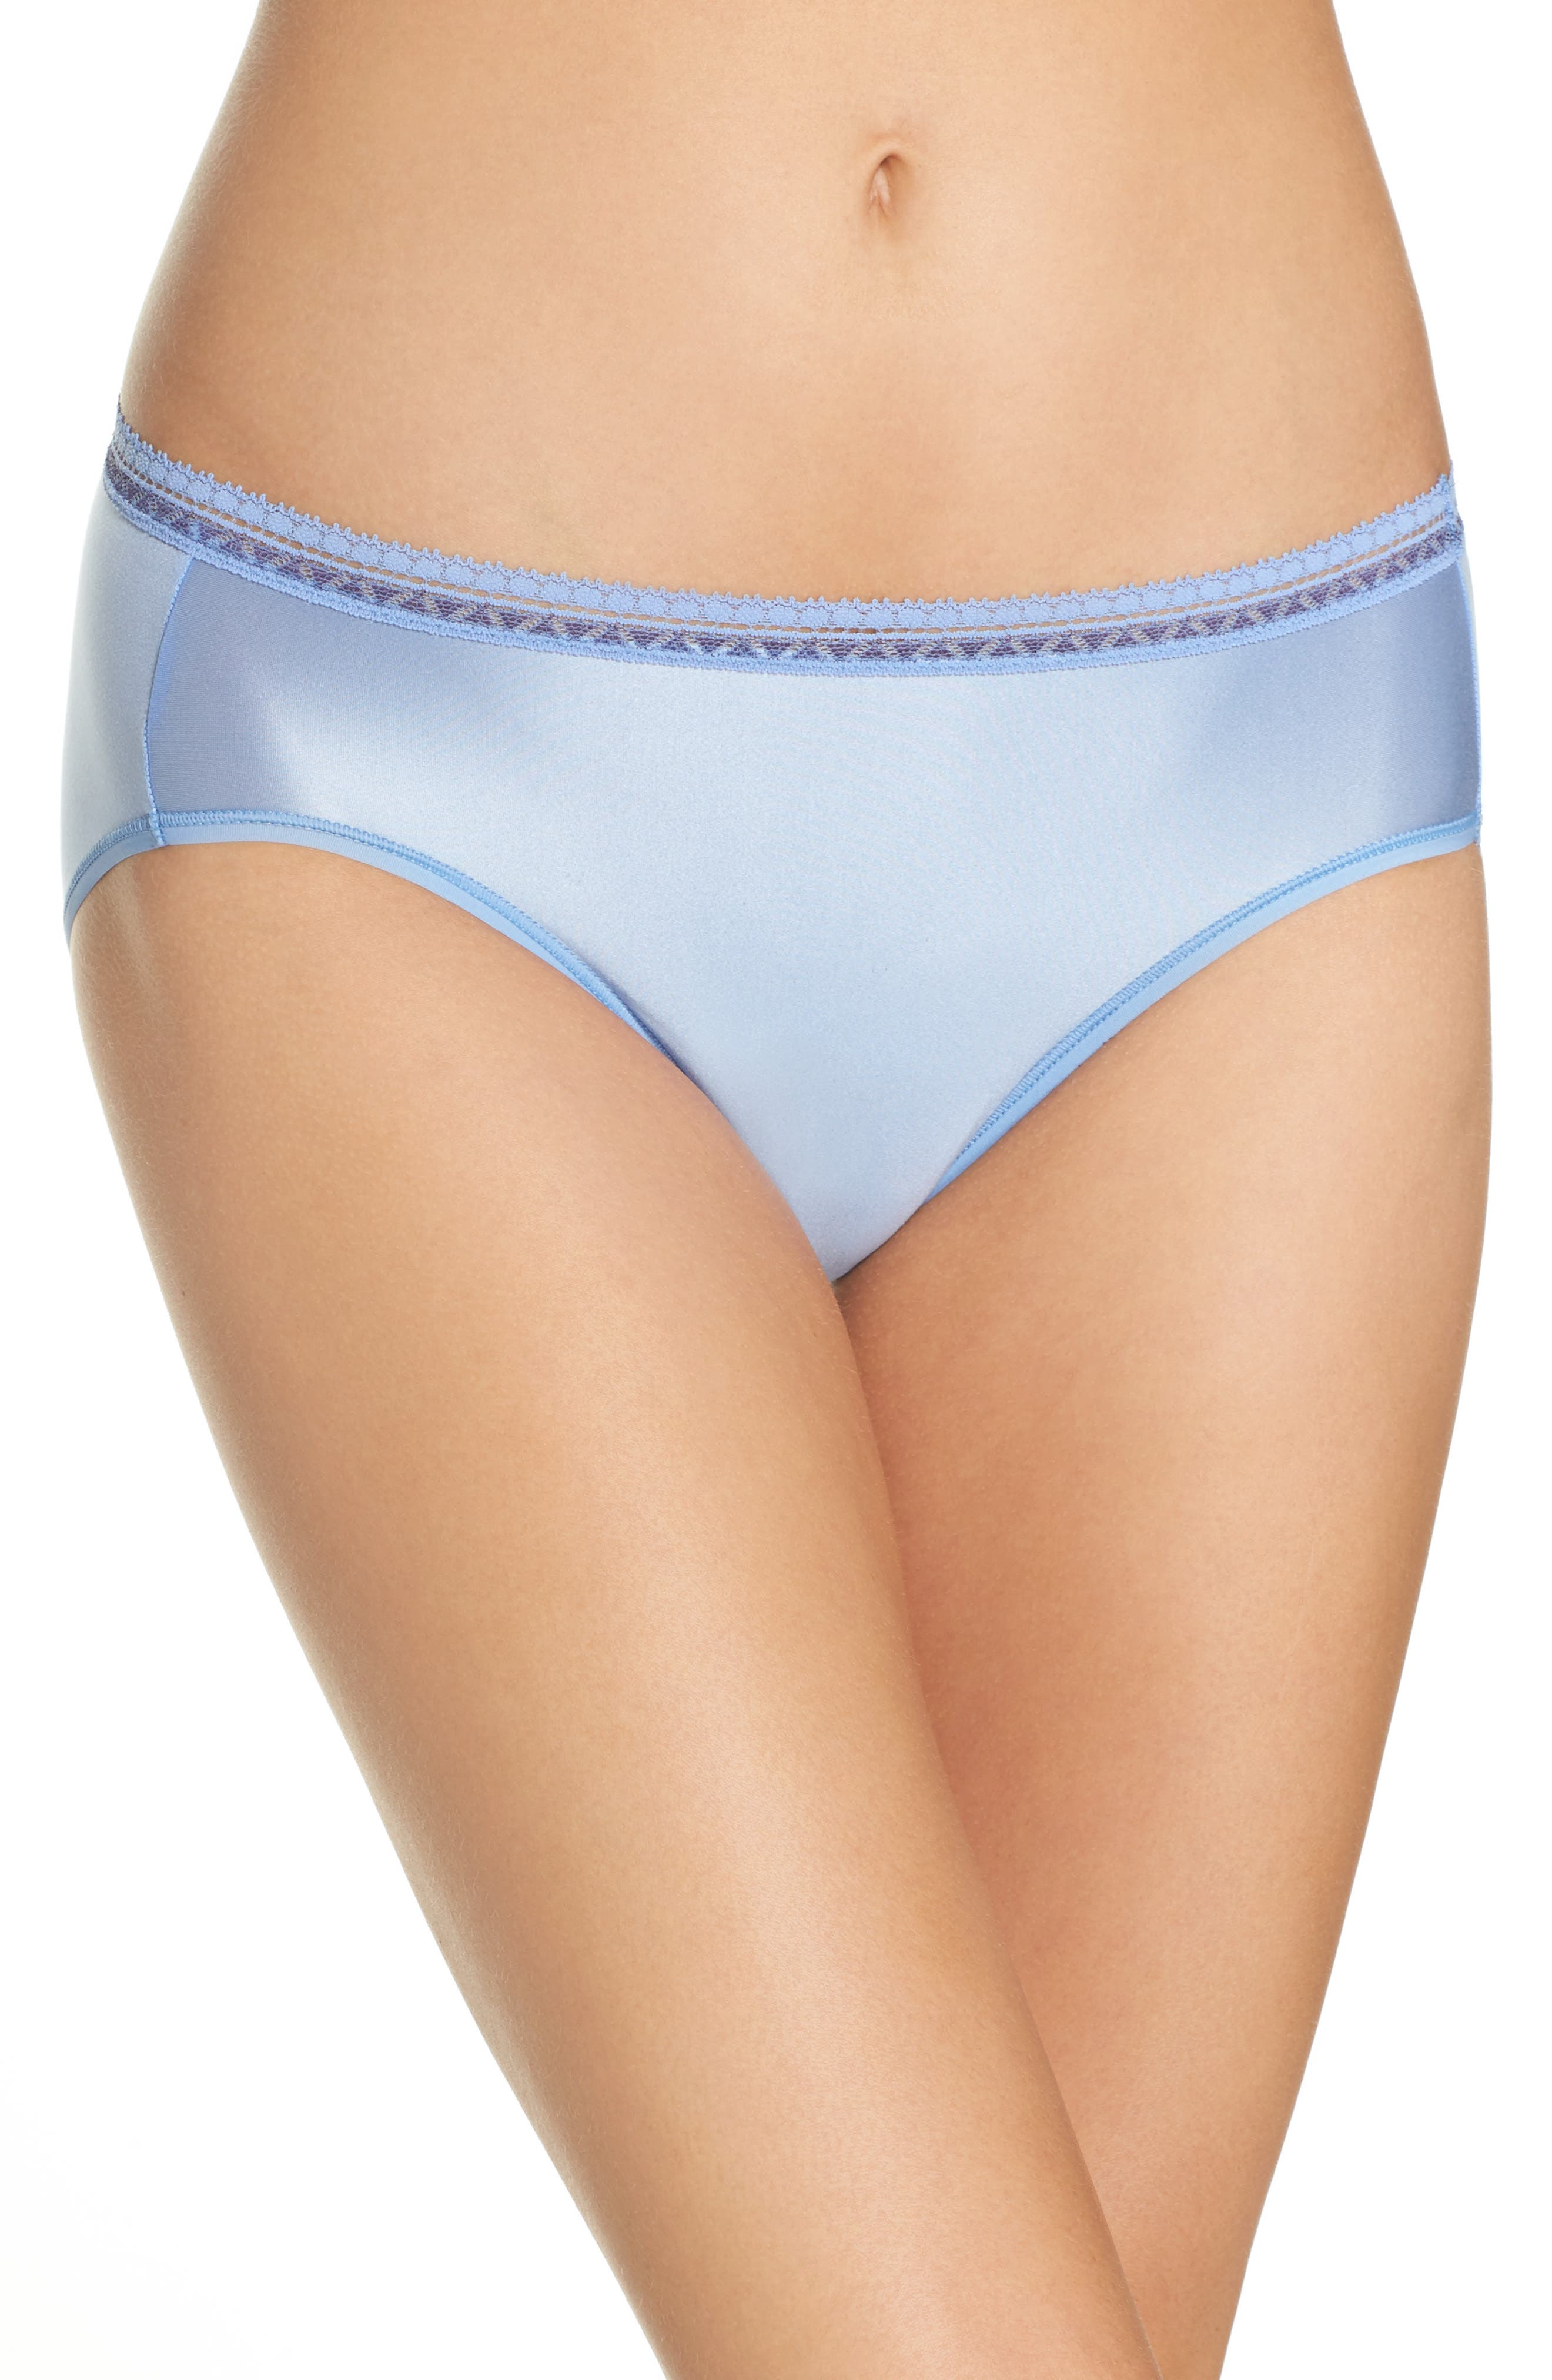 Alternate Image 1 Selected - Wacoal High Cut Briefs (3 for $39)